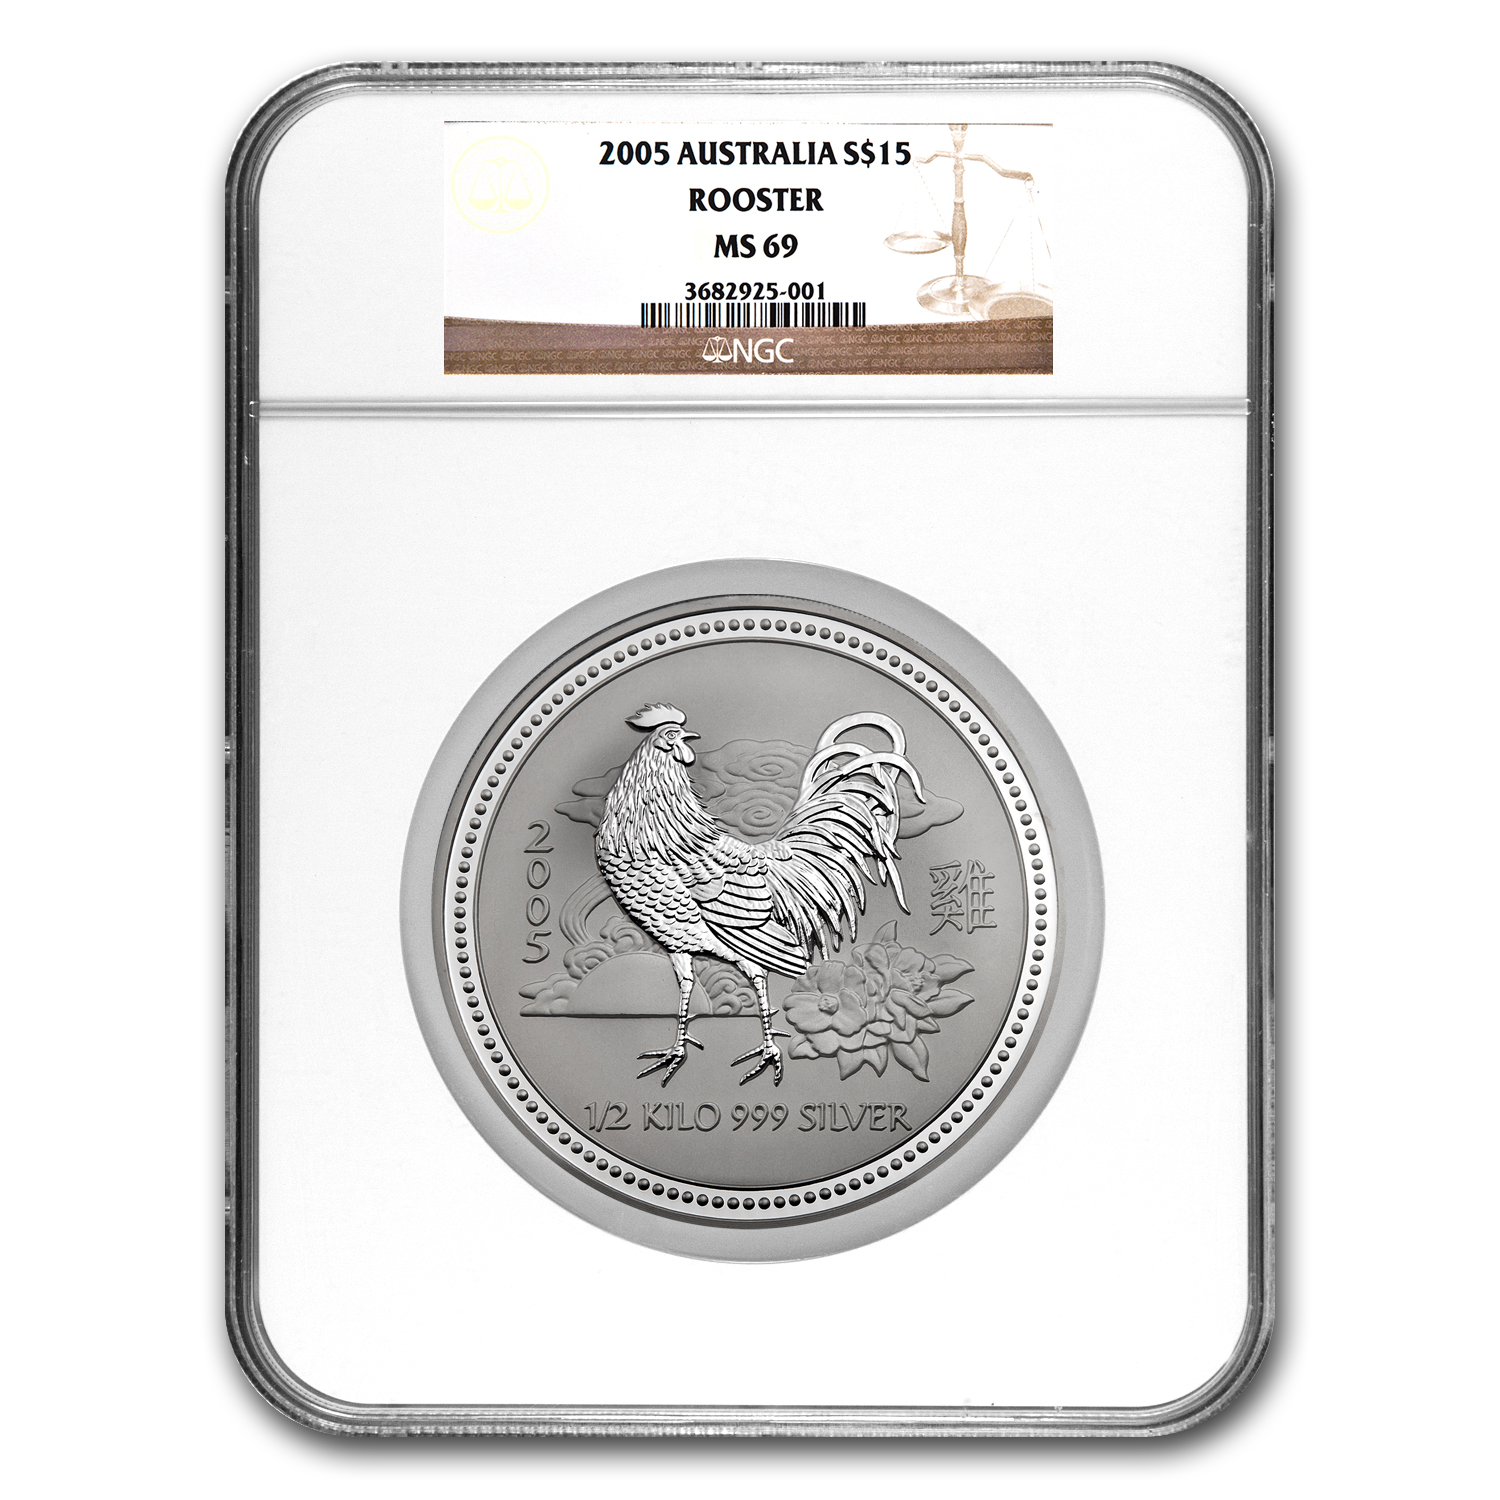 2005 Australia 1/2 kilo Silver Year of the Rooster MS-69 NGC